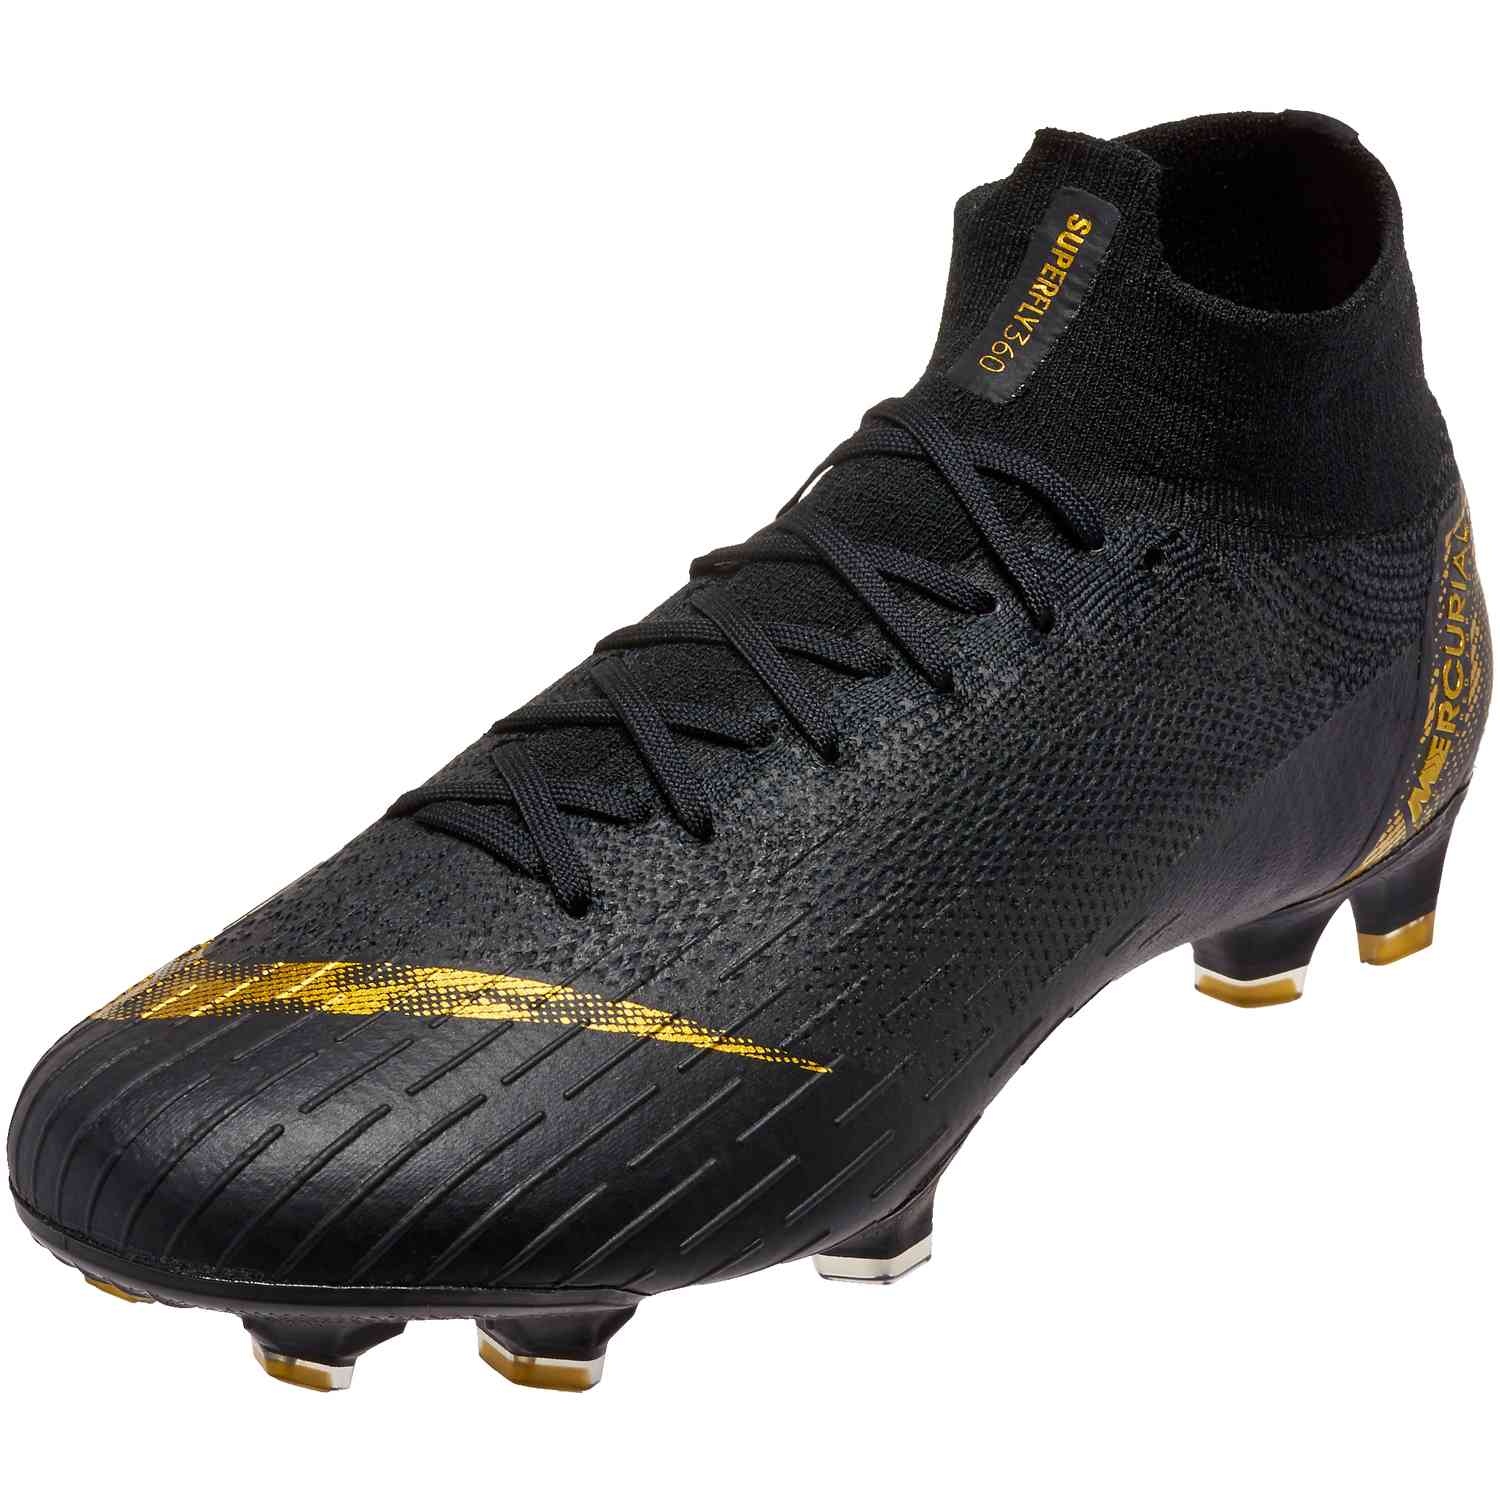 size 40 7f6f7 8e7c2 Nike Mercurial Superfly 6 Elite FG – Black Lux